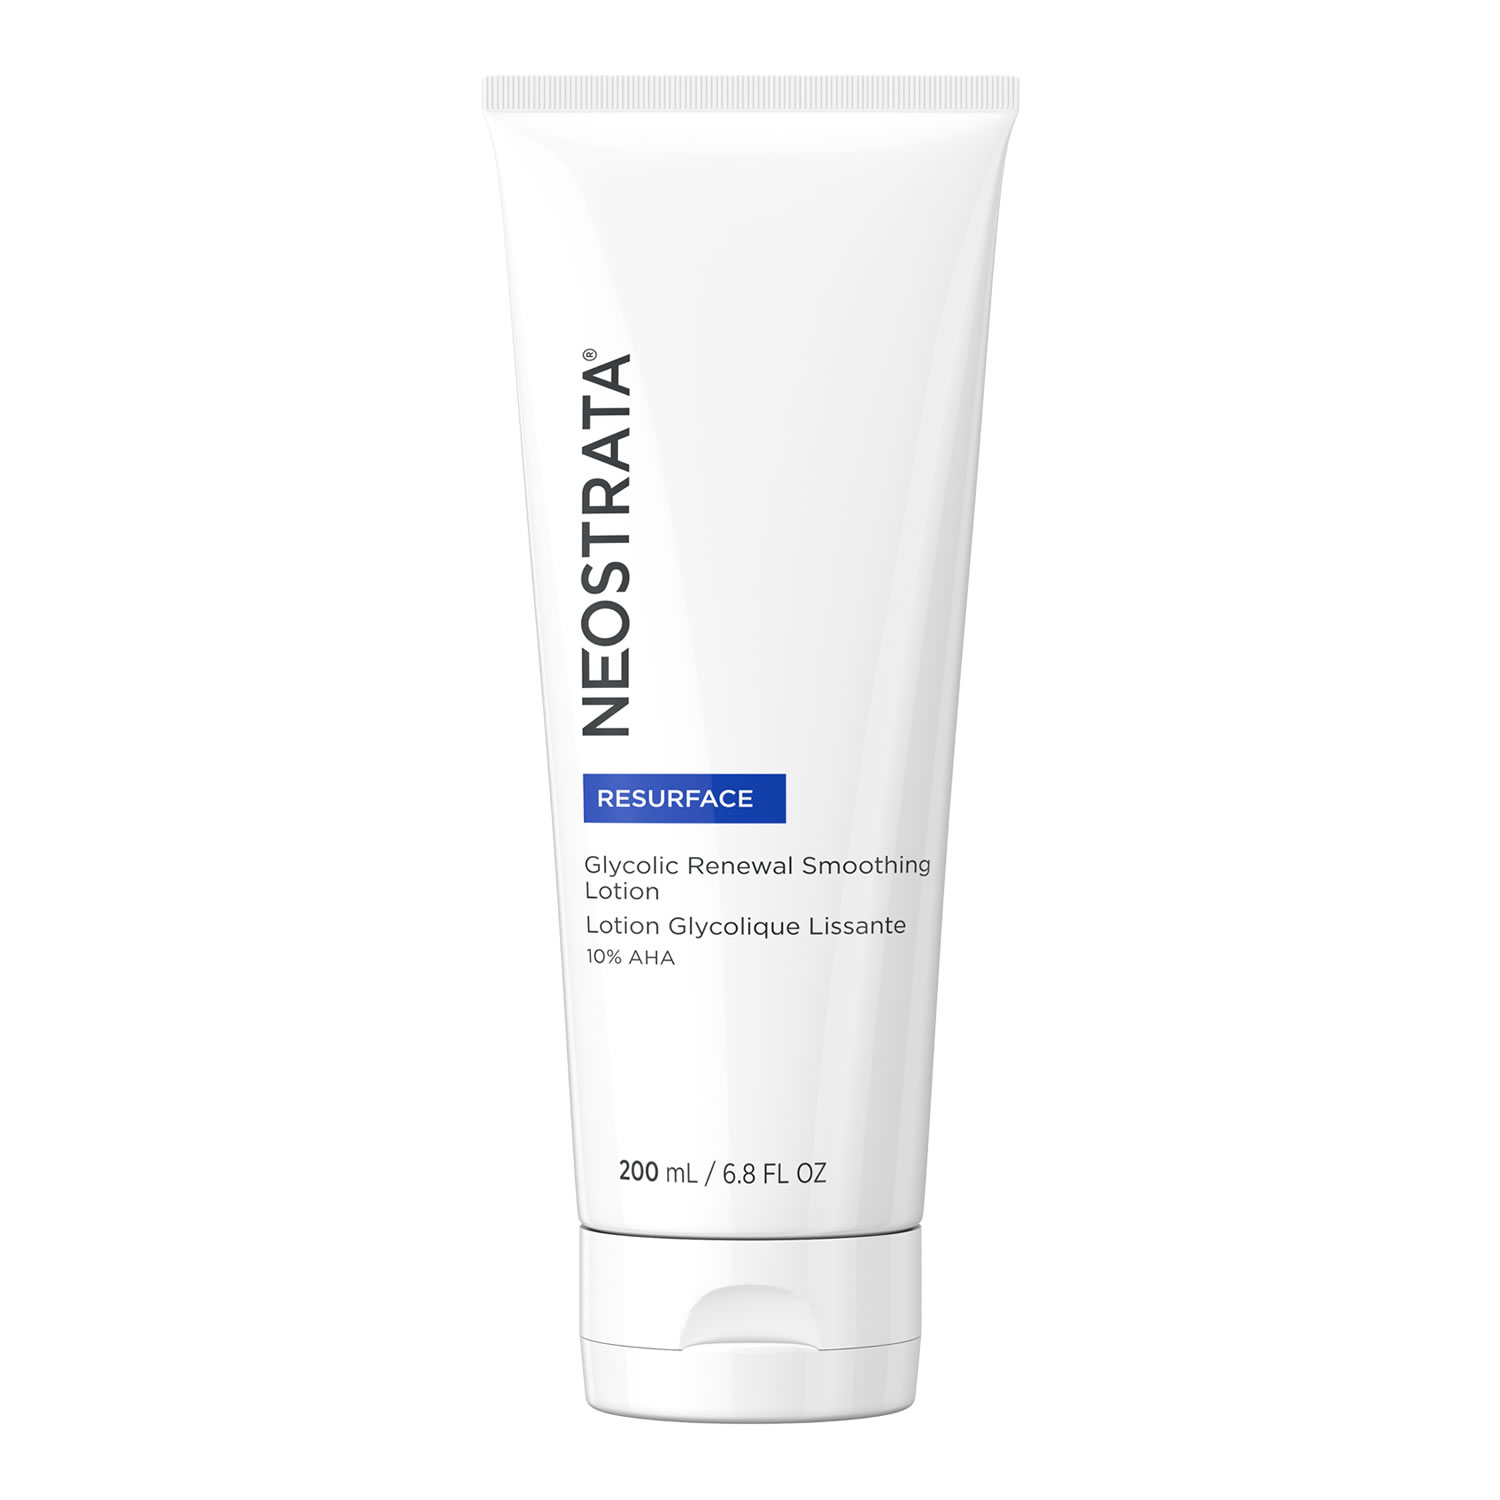 NeoStrata Ultra Smoothing Lotion 10 AHA (200 ml / 6.8 fl oz)